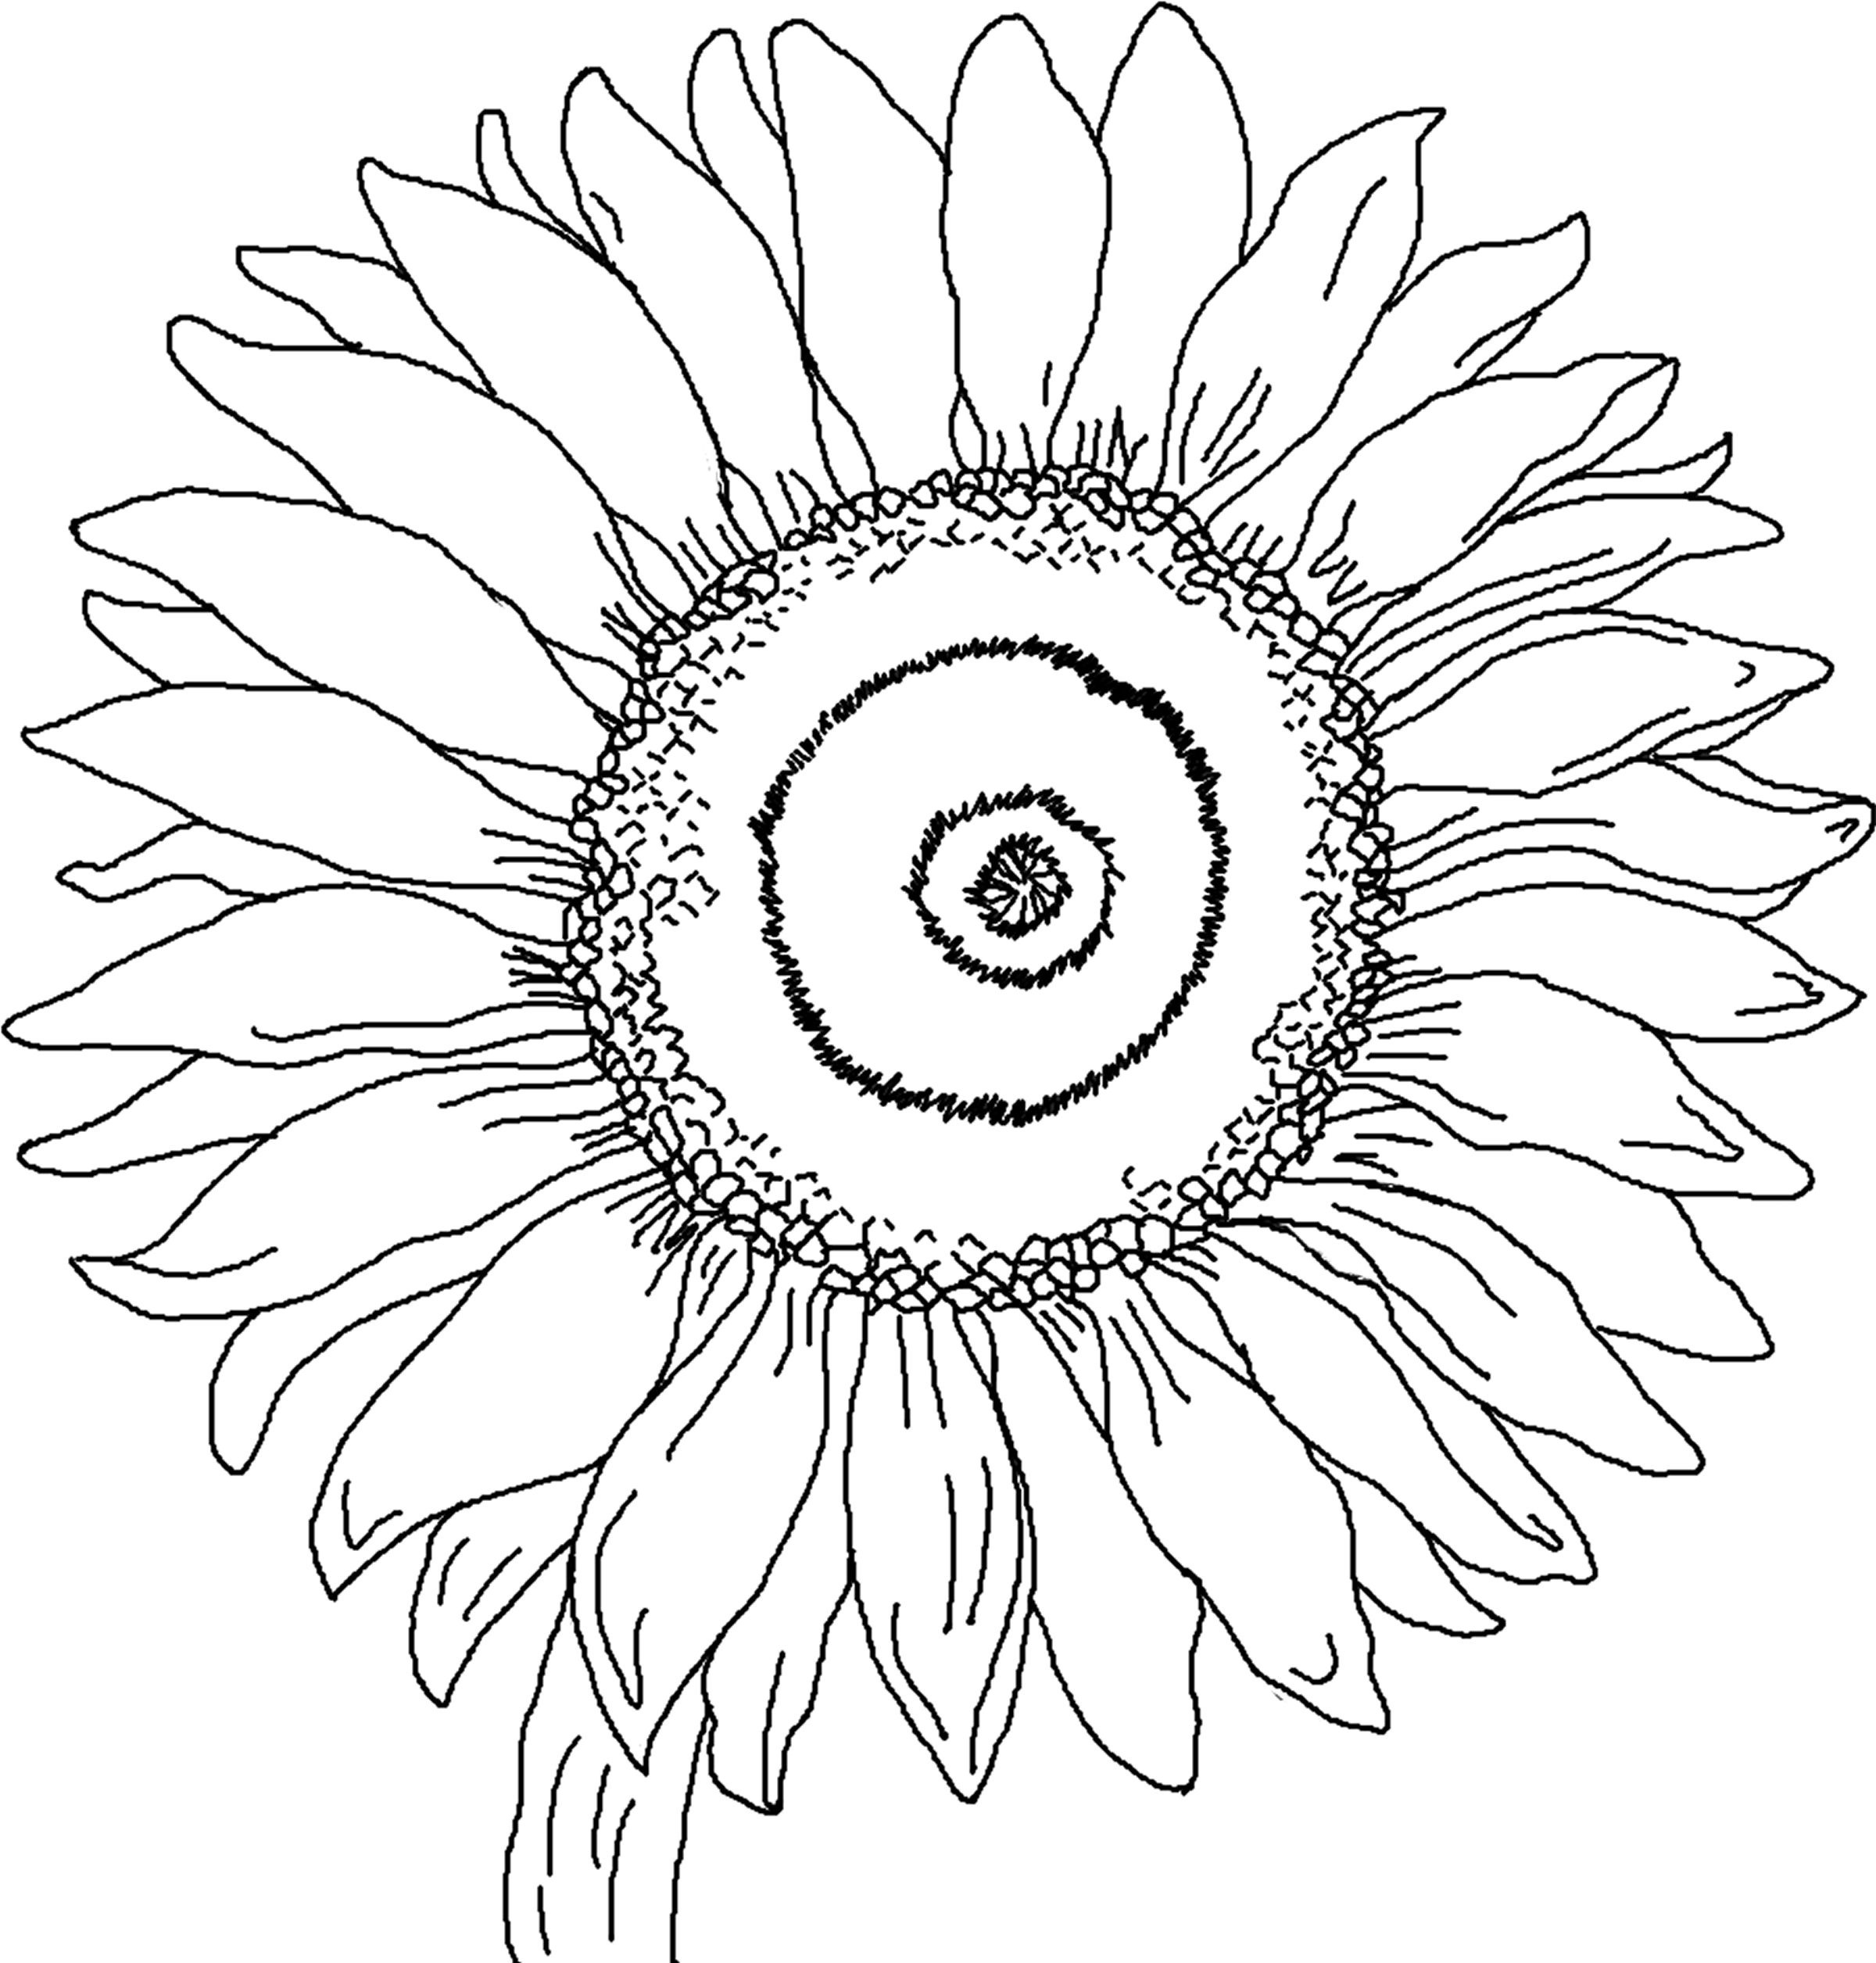 flower templates for coloring free printable sunflower coloring pages for kids templates for coloring flower